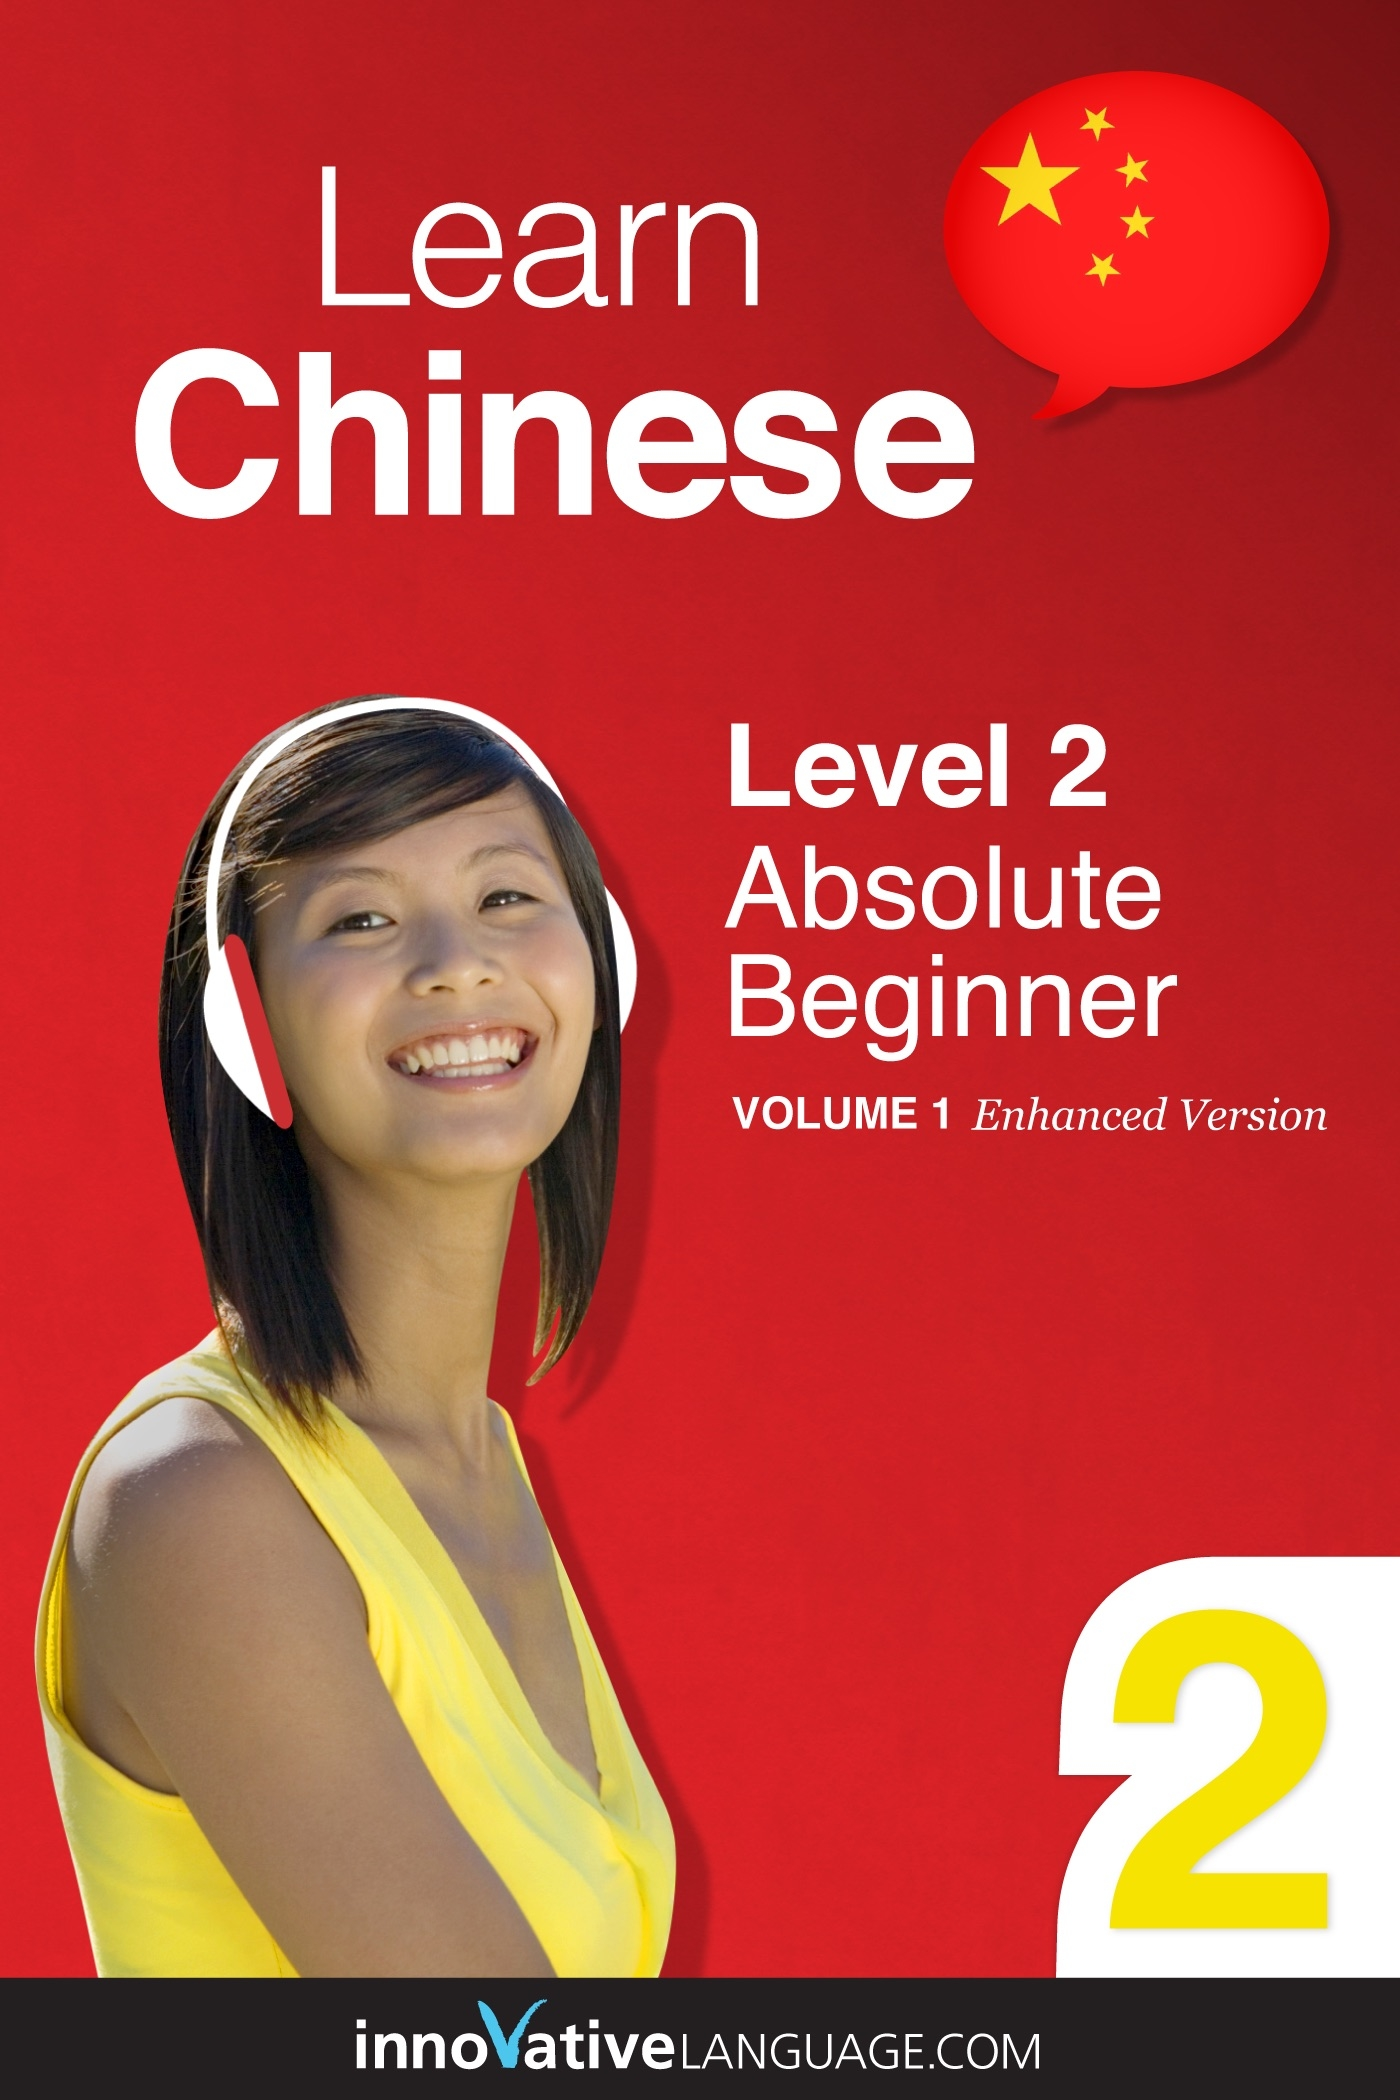 Learn Chinese - Level 2: Absolute Beginner